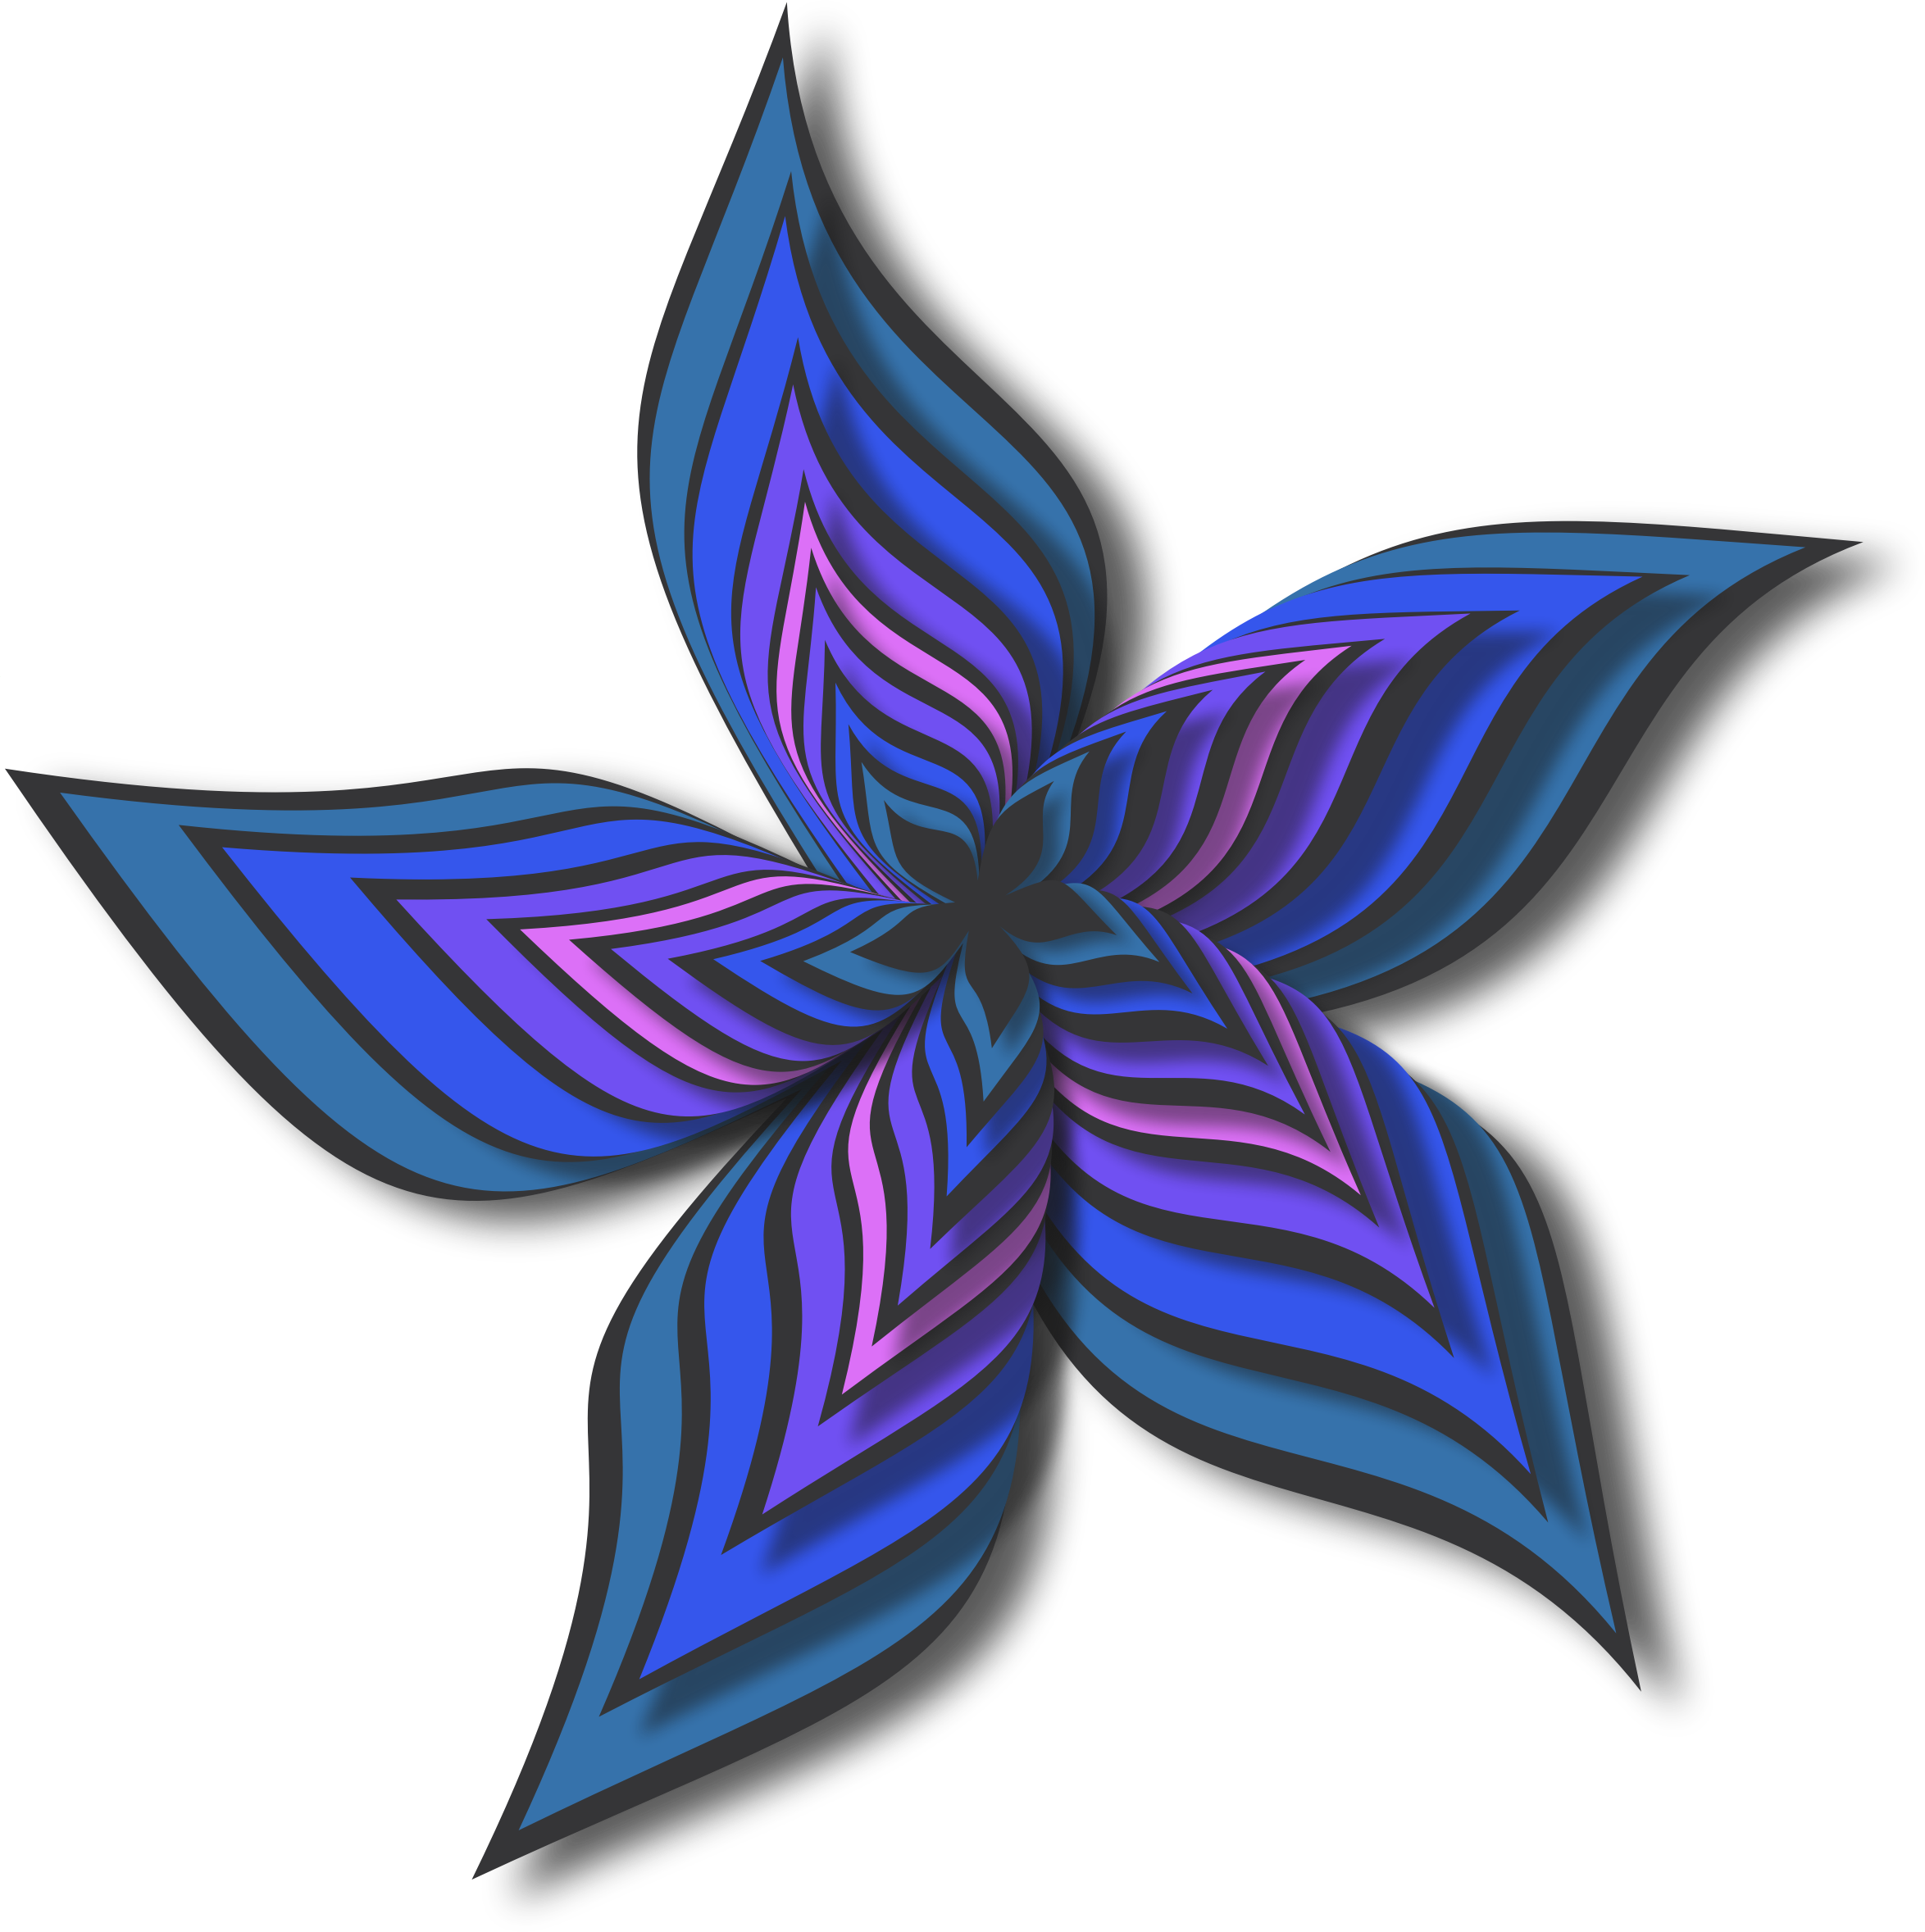 Abstract flower 28 (colour 5) by Firkin